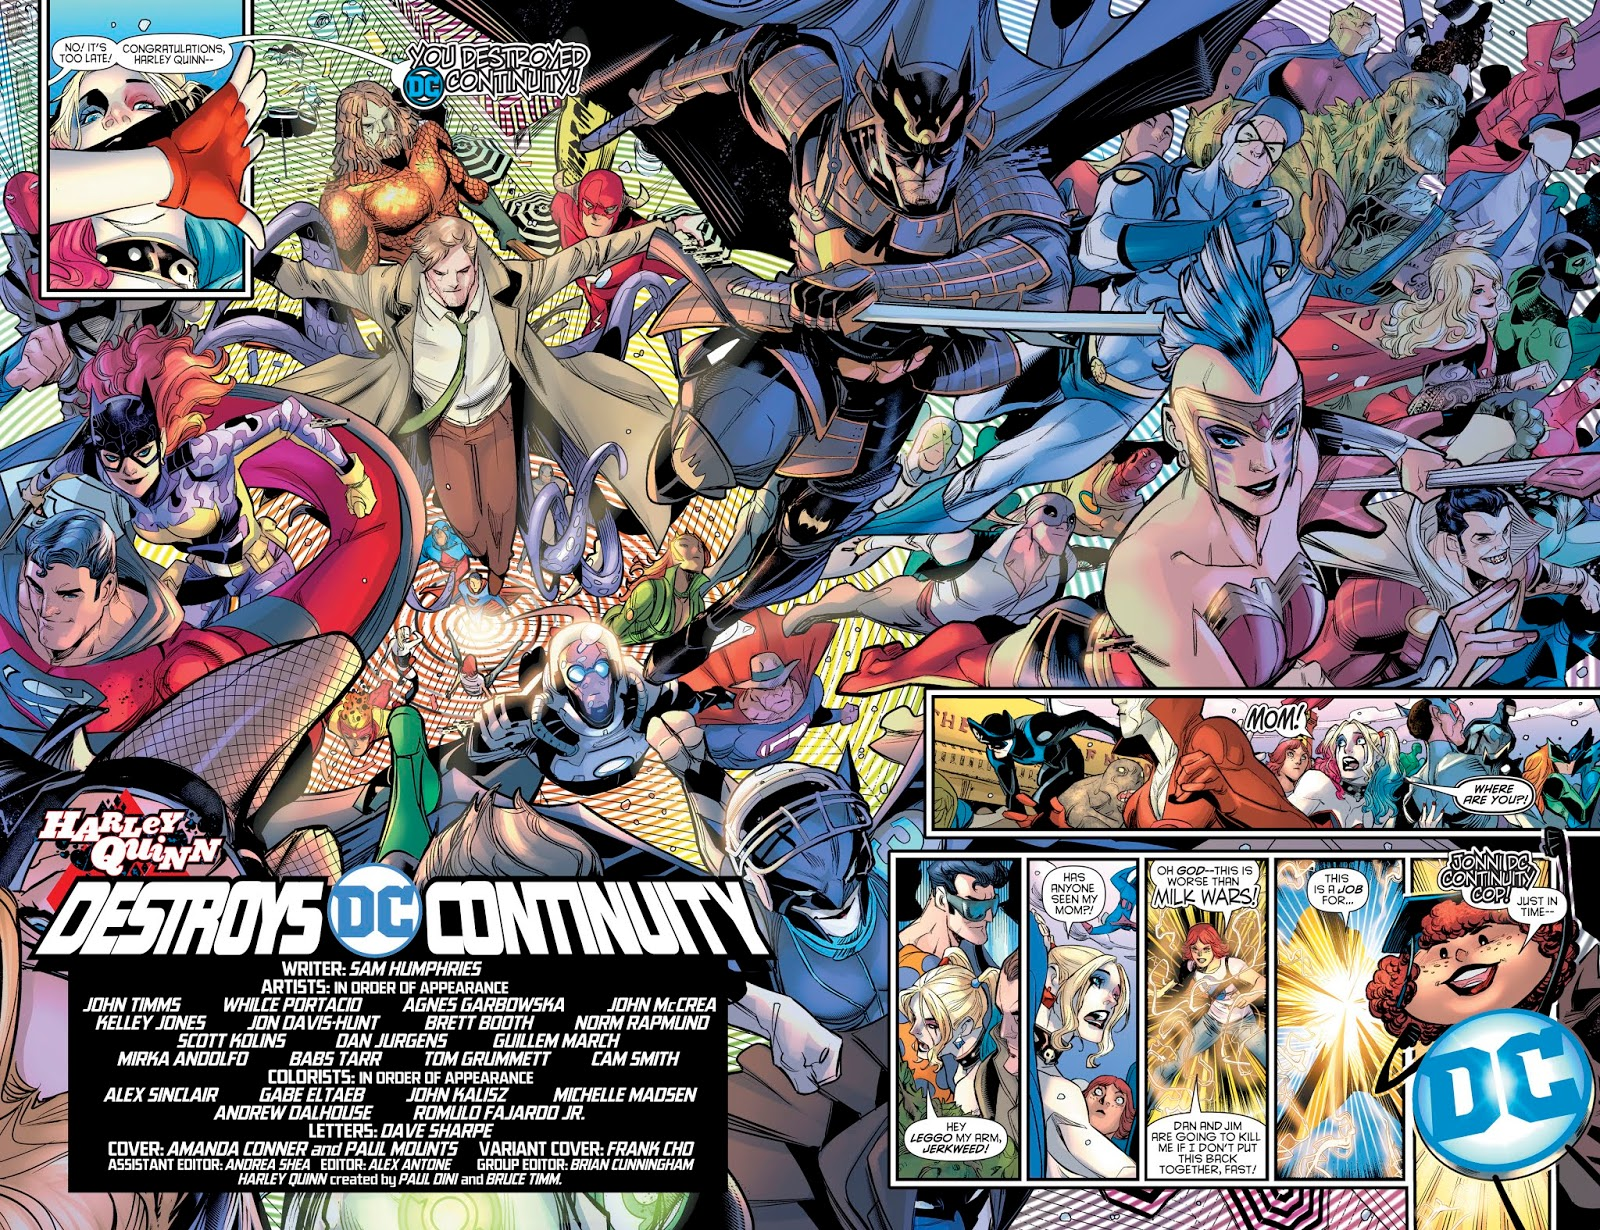 780f4bfa55a5 There s an up and down adventure throughout the book that includes the  Anti-Monitor!